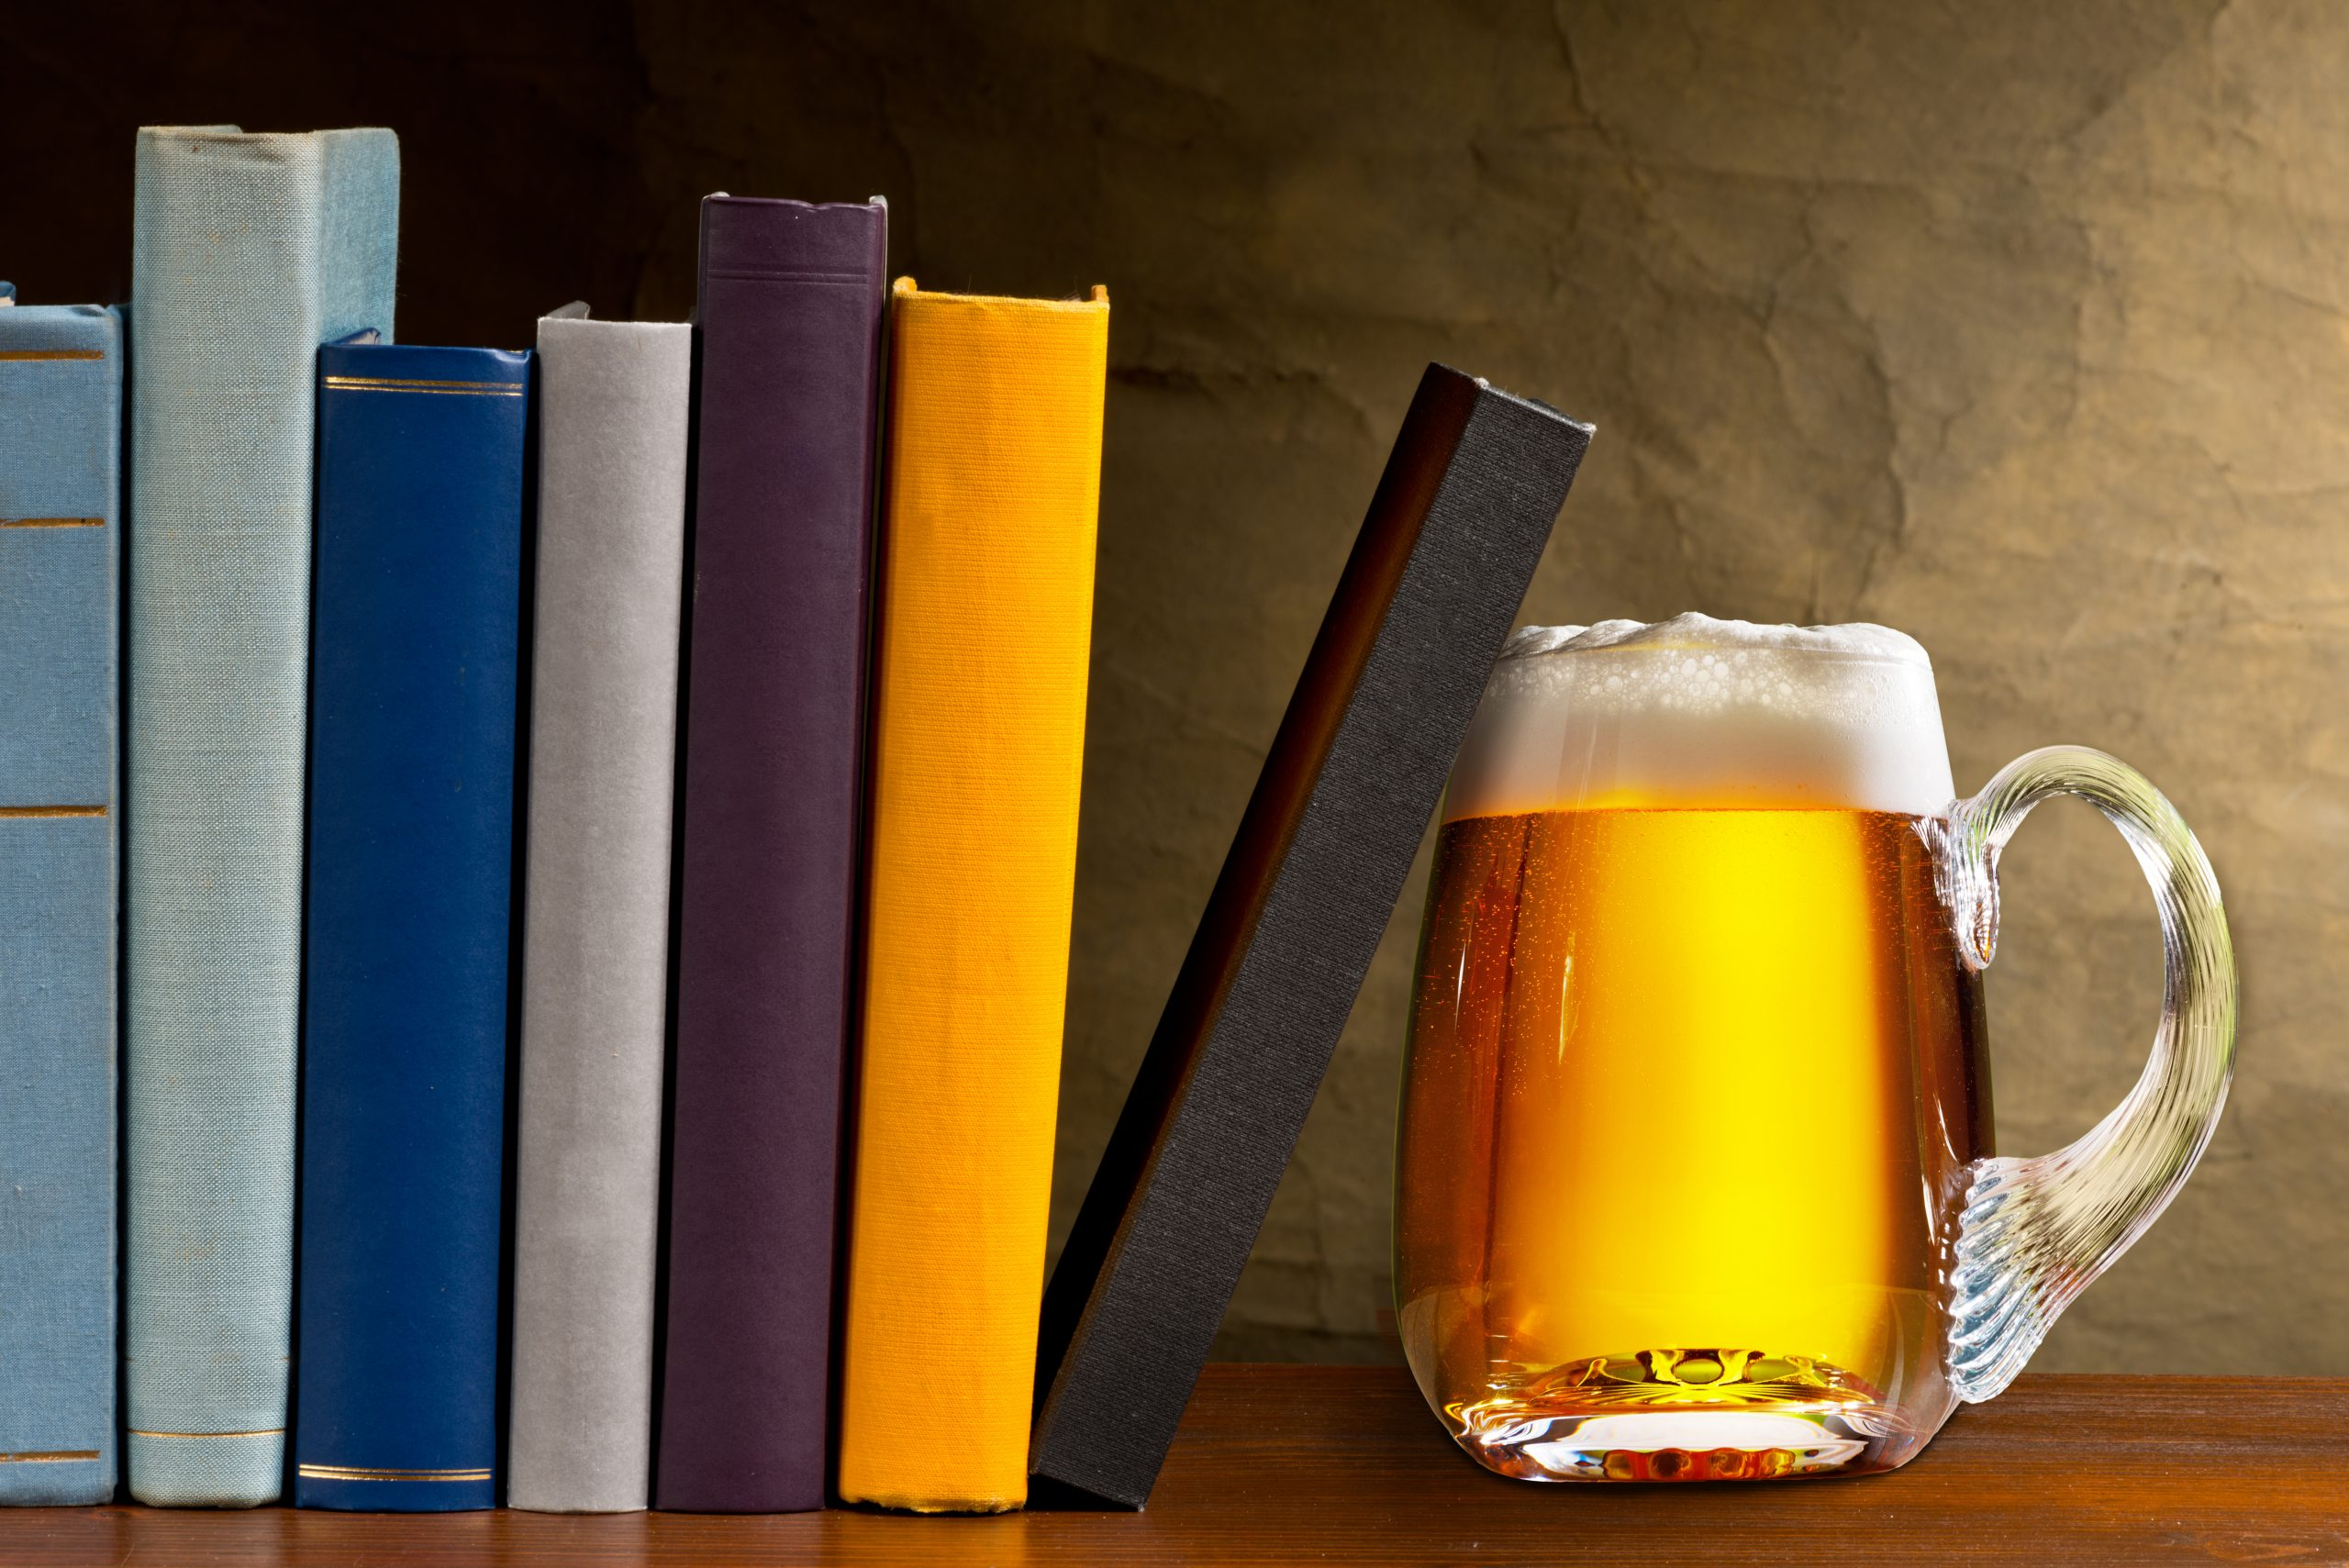 glass of beer next to books